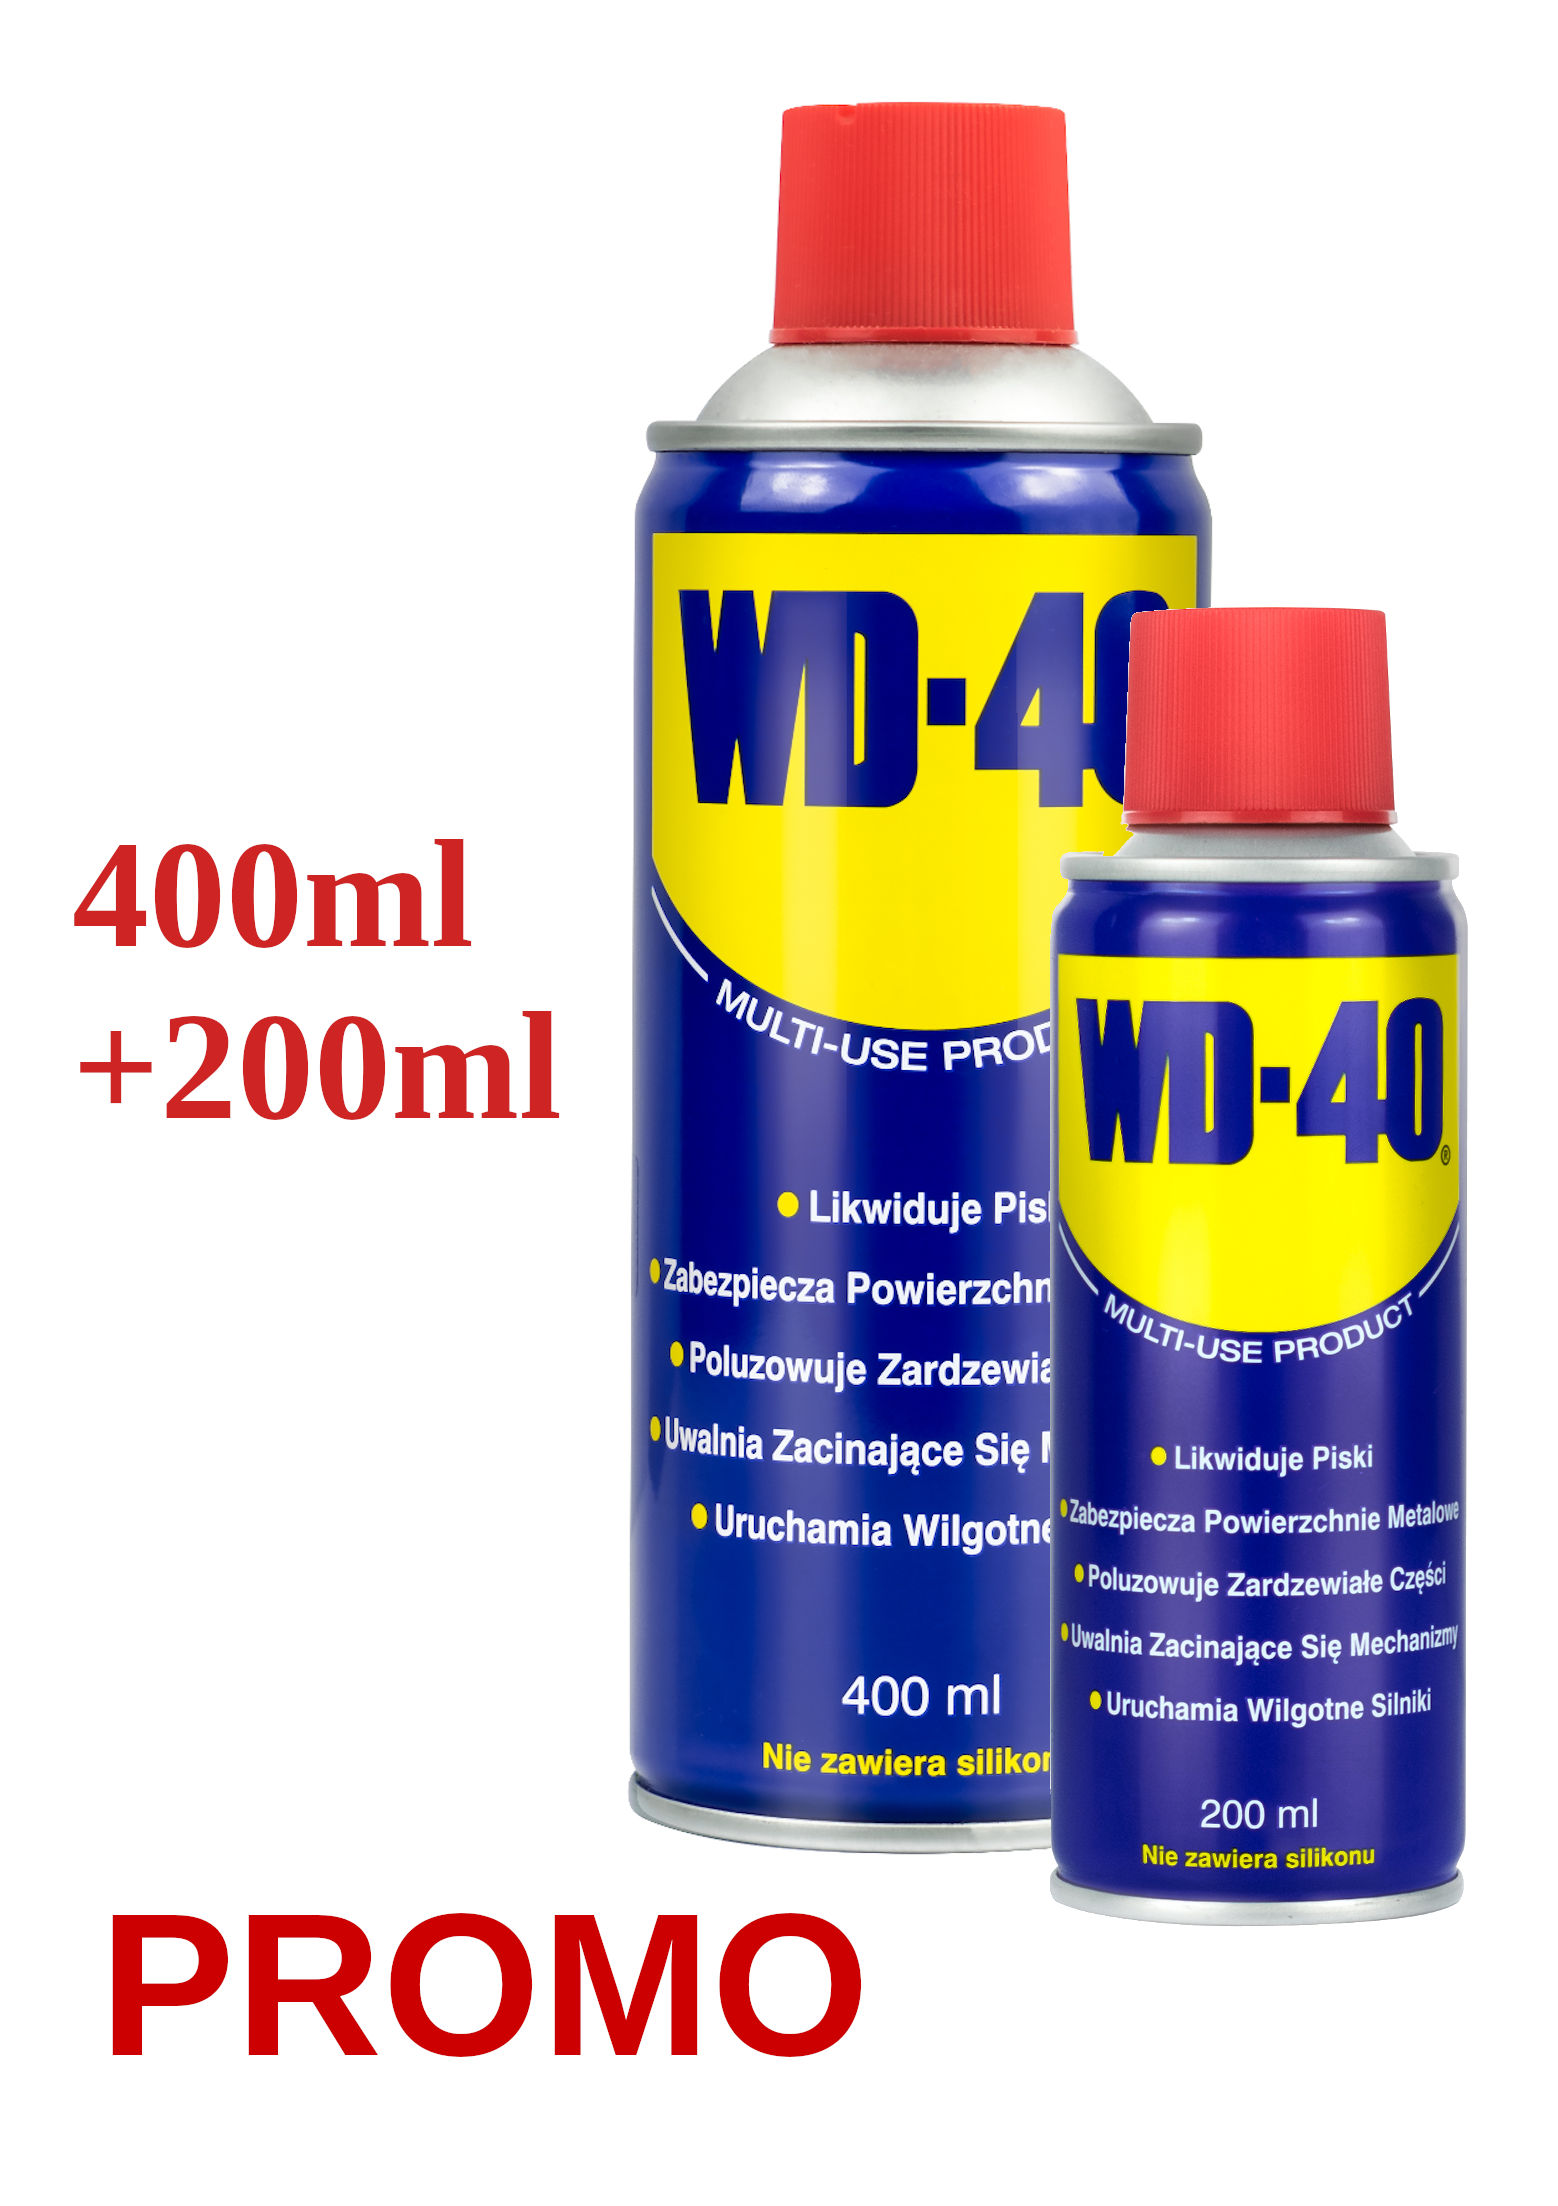 WD40 01-506